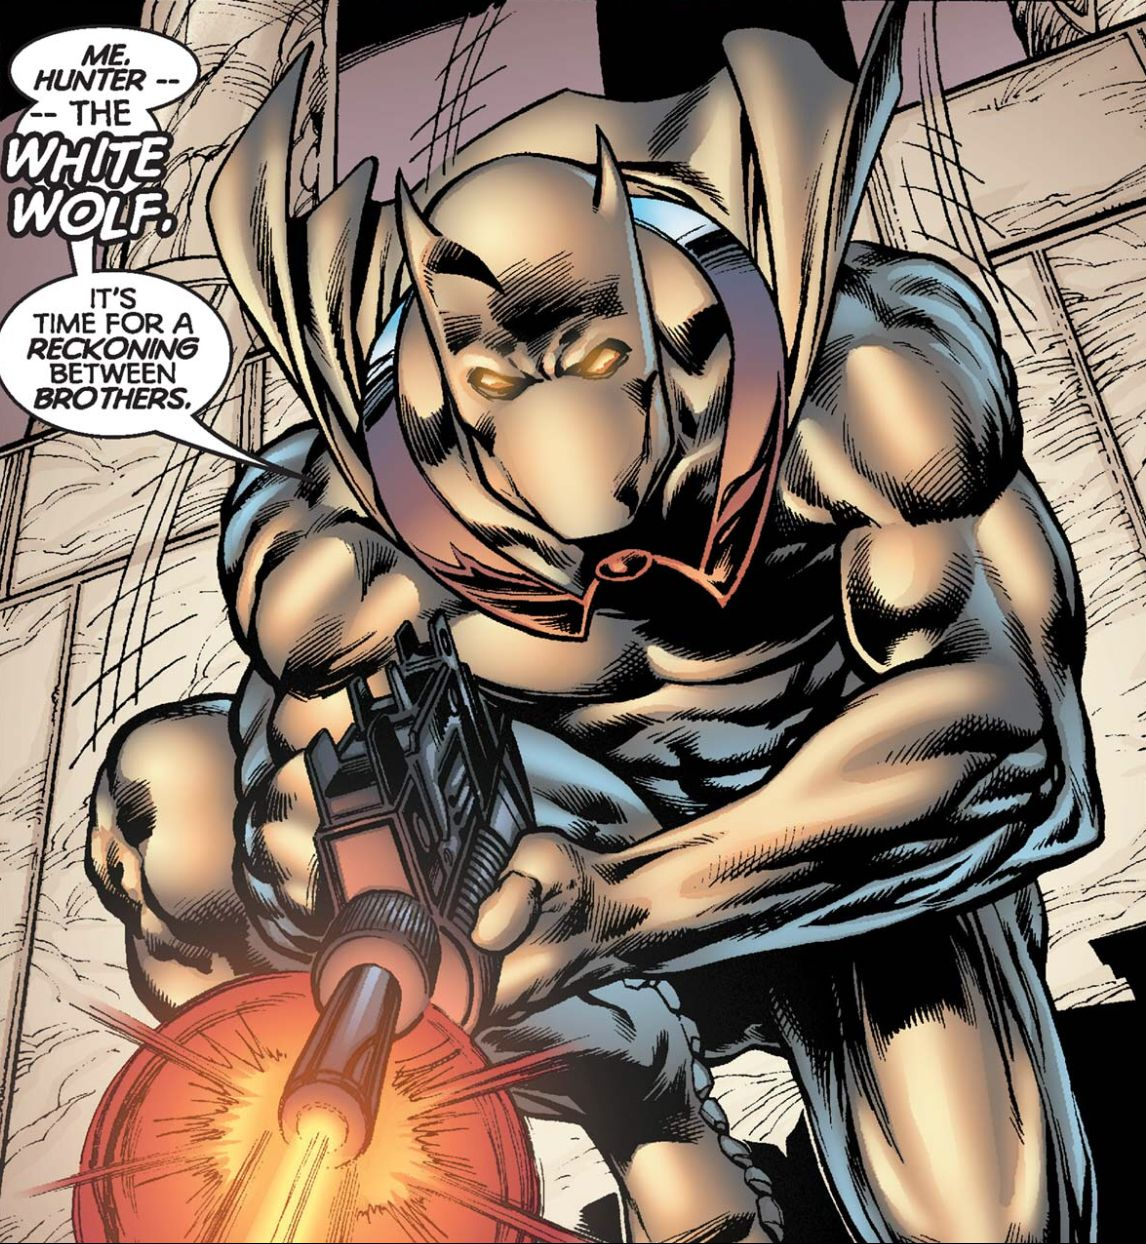 Hunter, the White Wolf, in Black Panther #12, Marvel Comics, 1999.